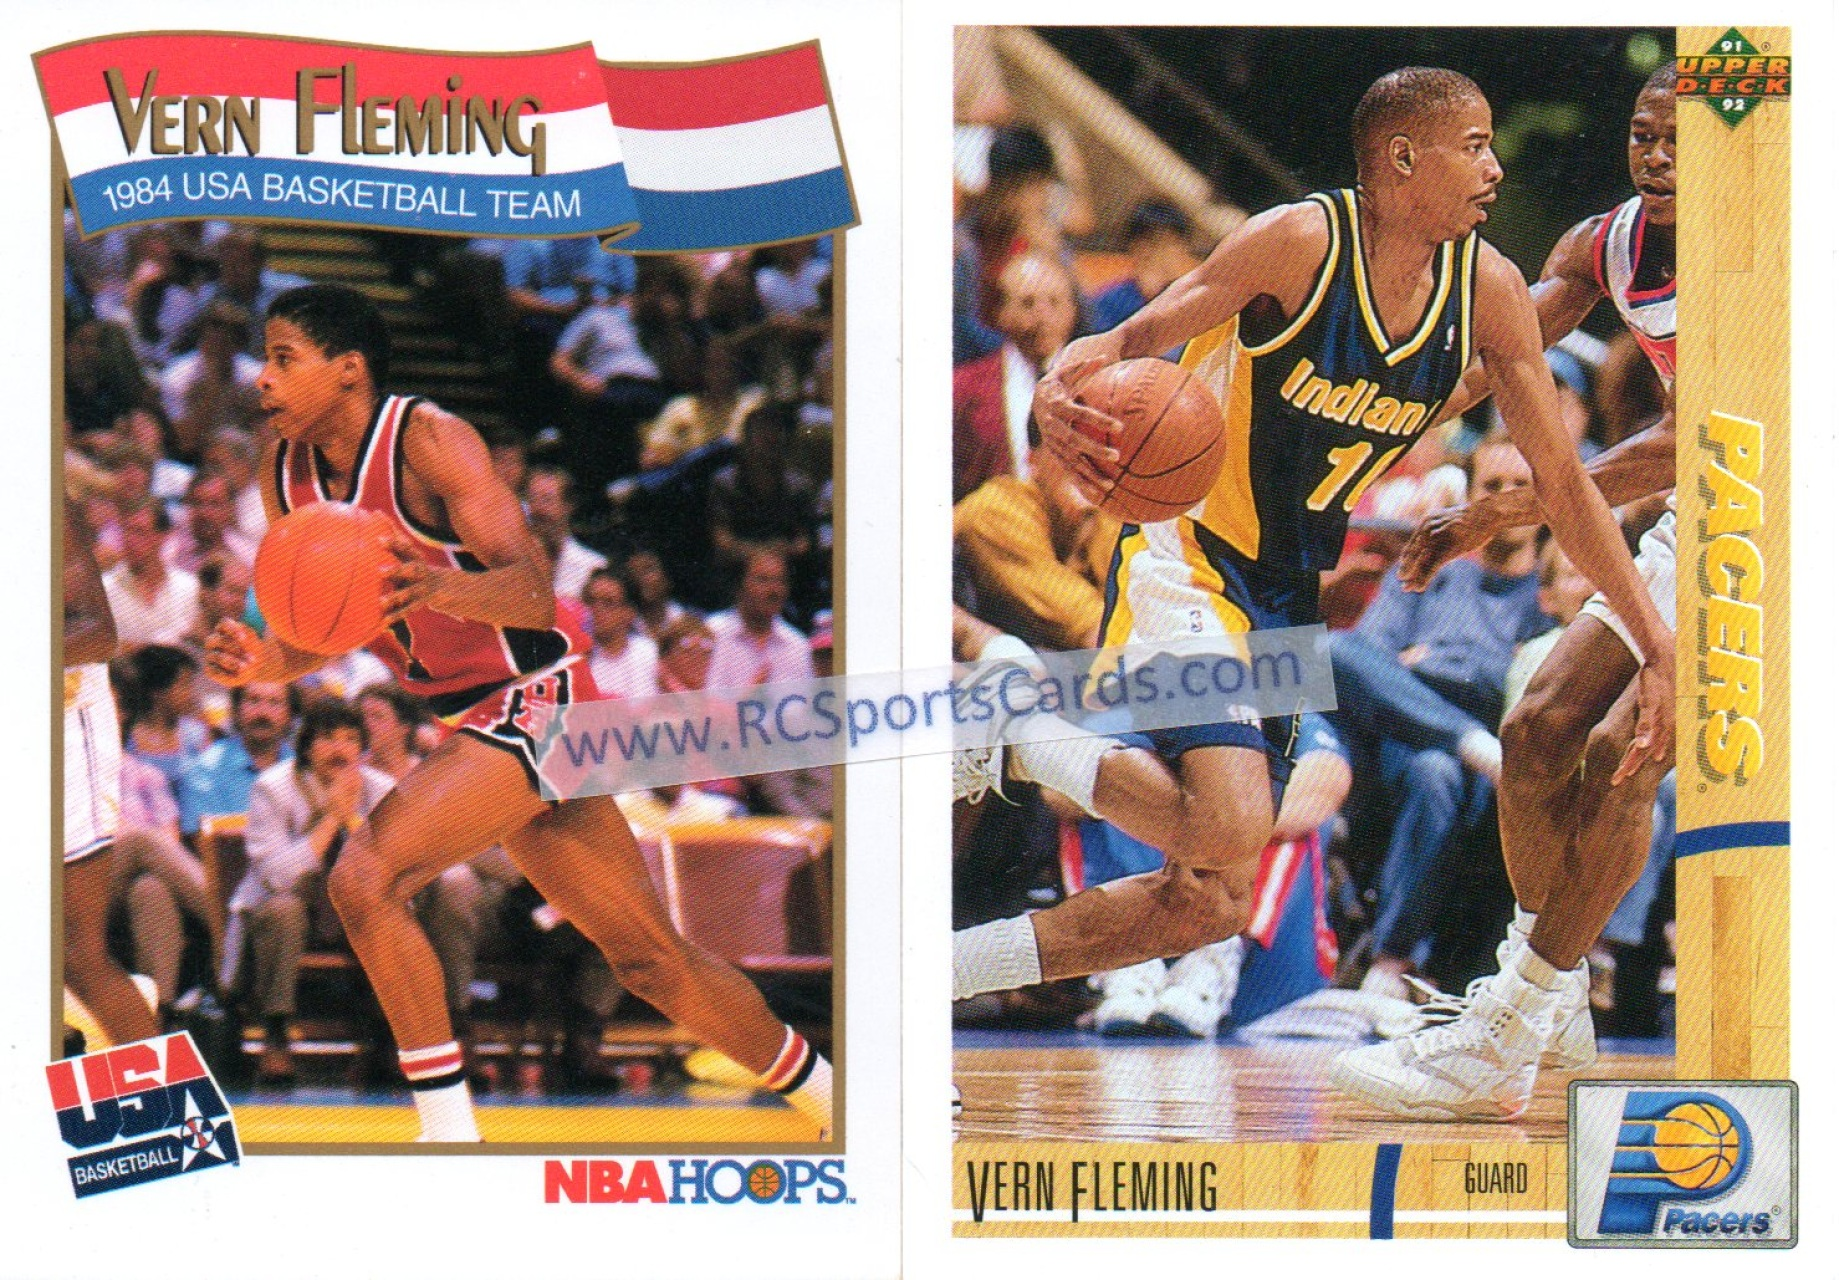 Basketball Trading cards site Basketball Cards by RCSportsCards